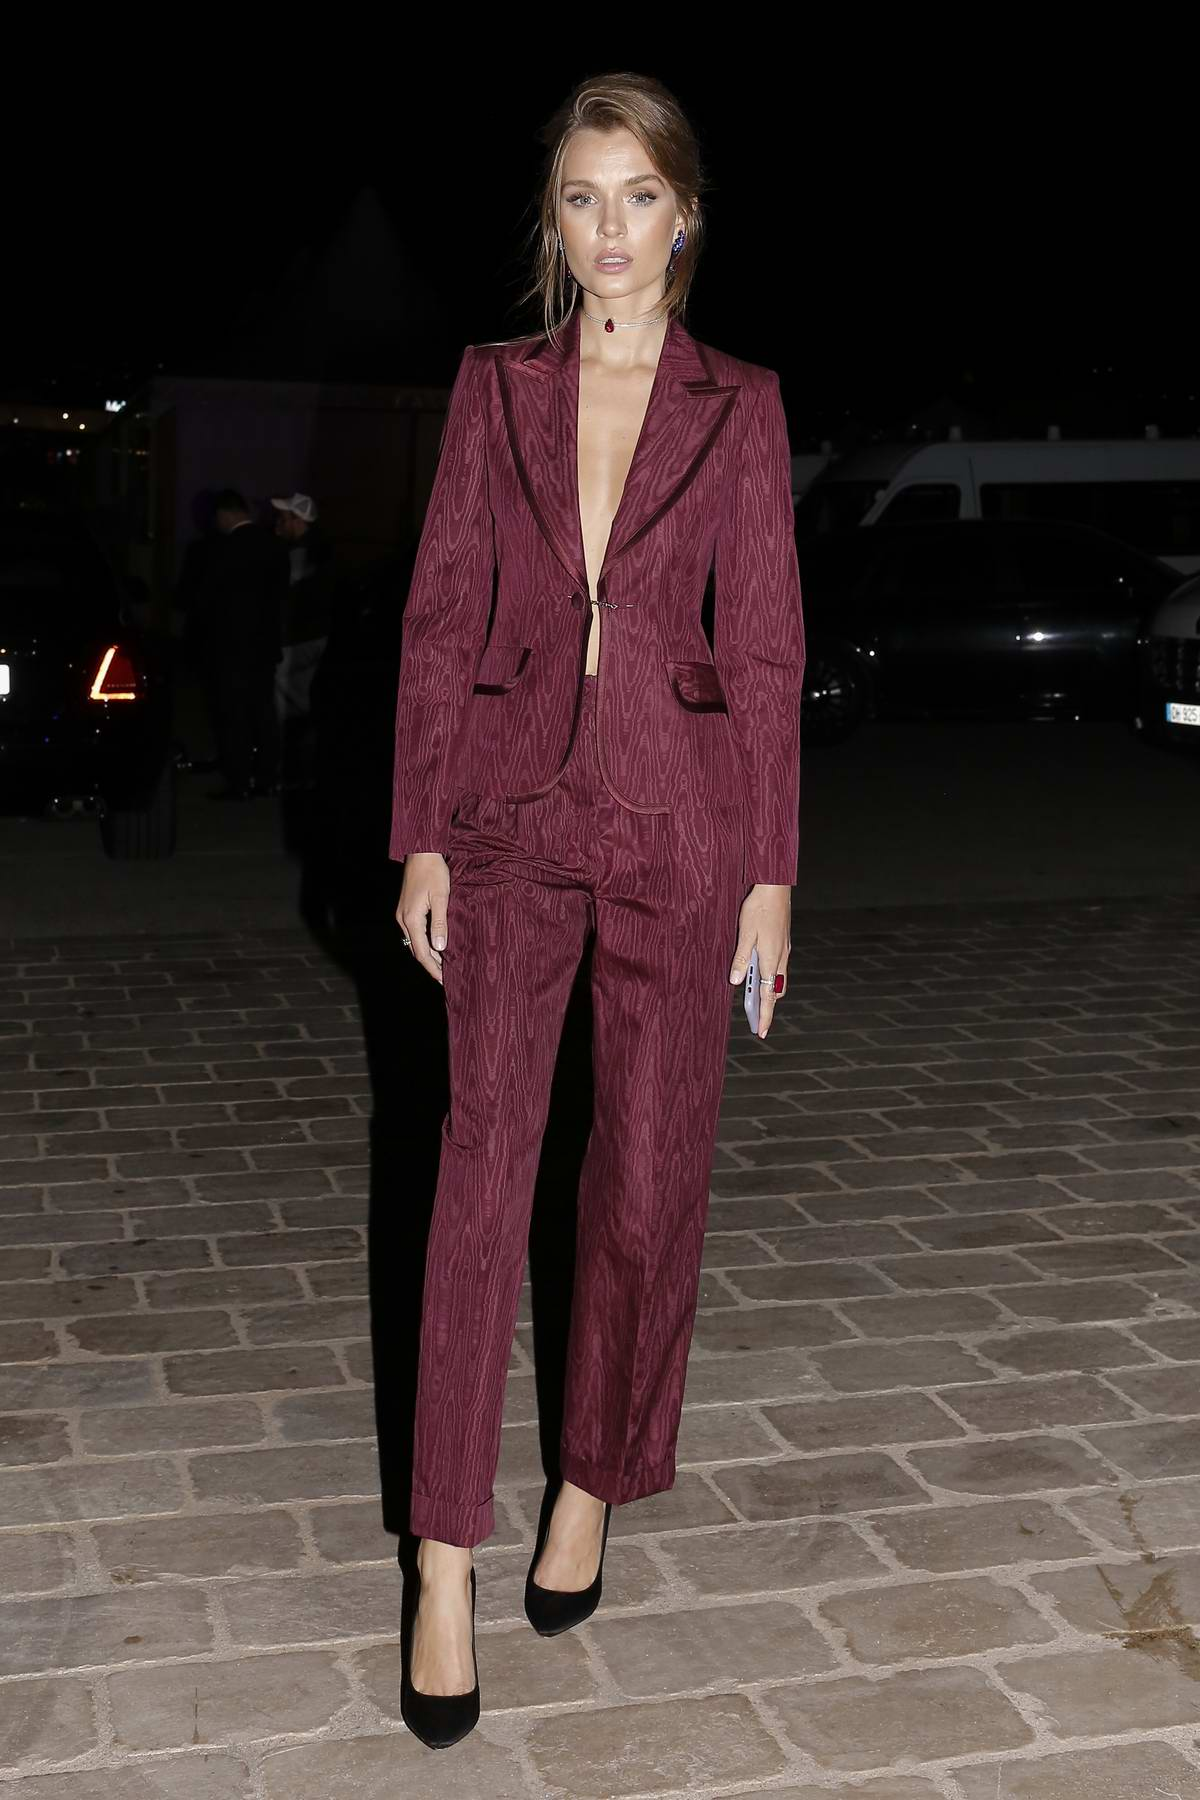 Josephine Skriver attends a private party on a boat during the 72nd Cannes Film Festival in Cannes, France